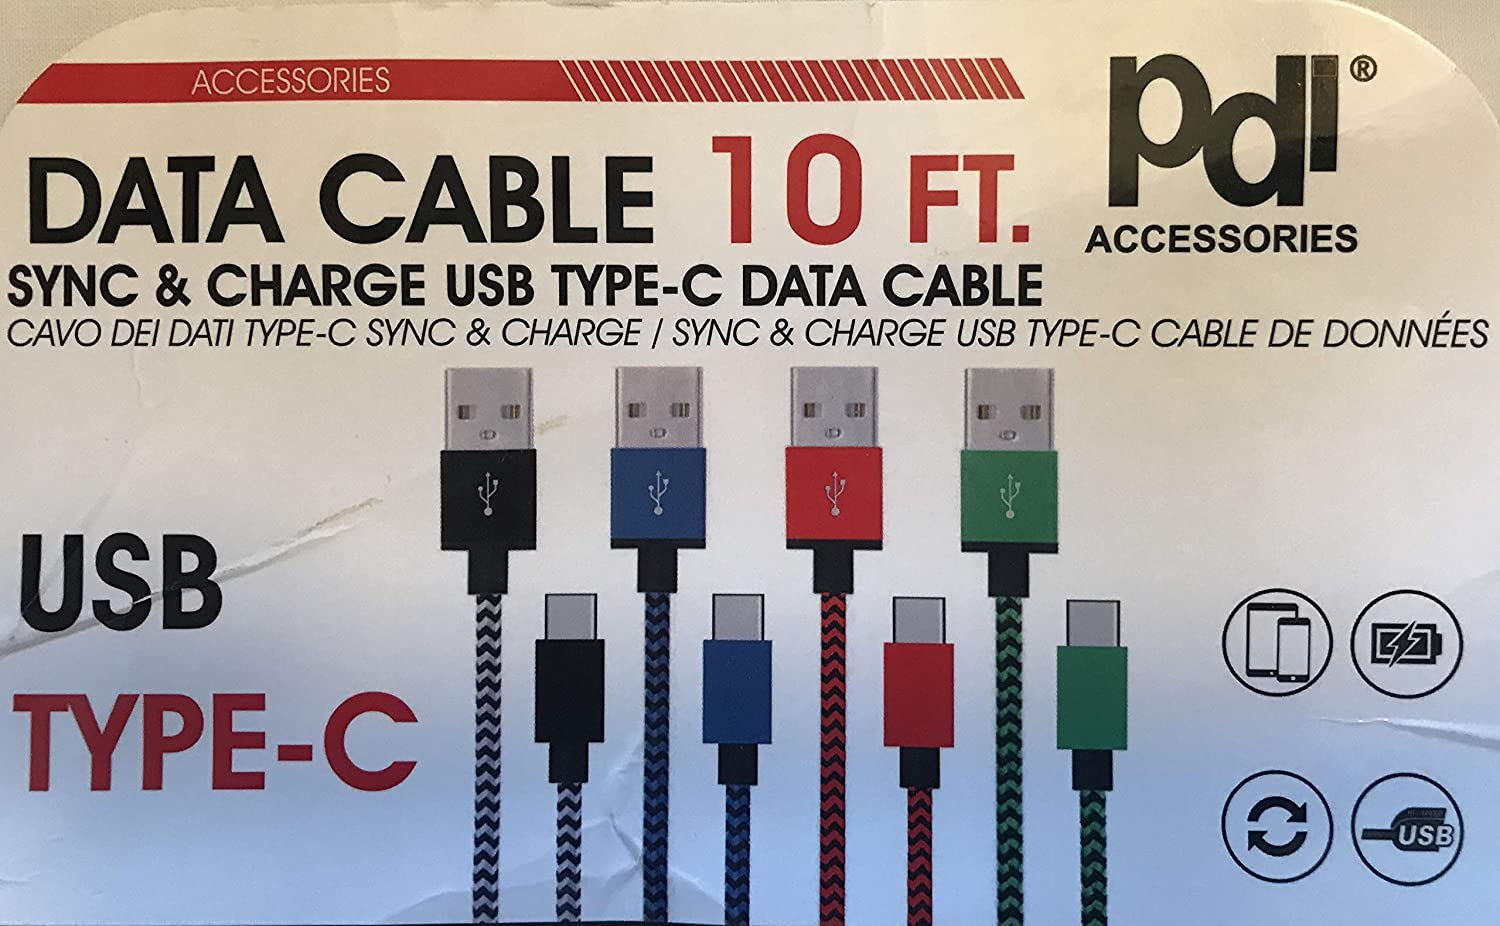 Type-C USB 10FT Sync /& Charge Data Cable 4 Pack